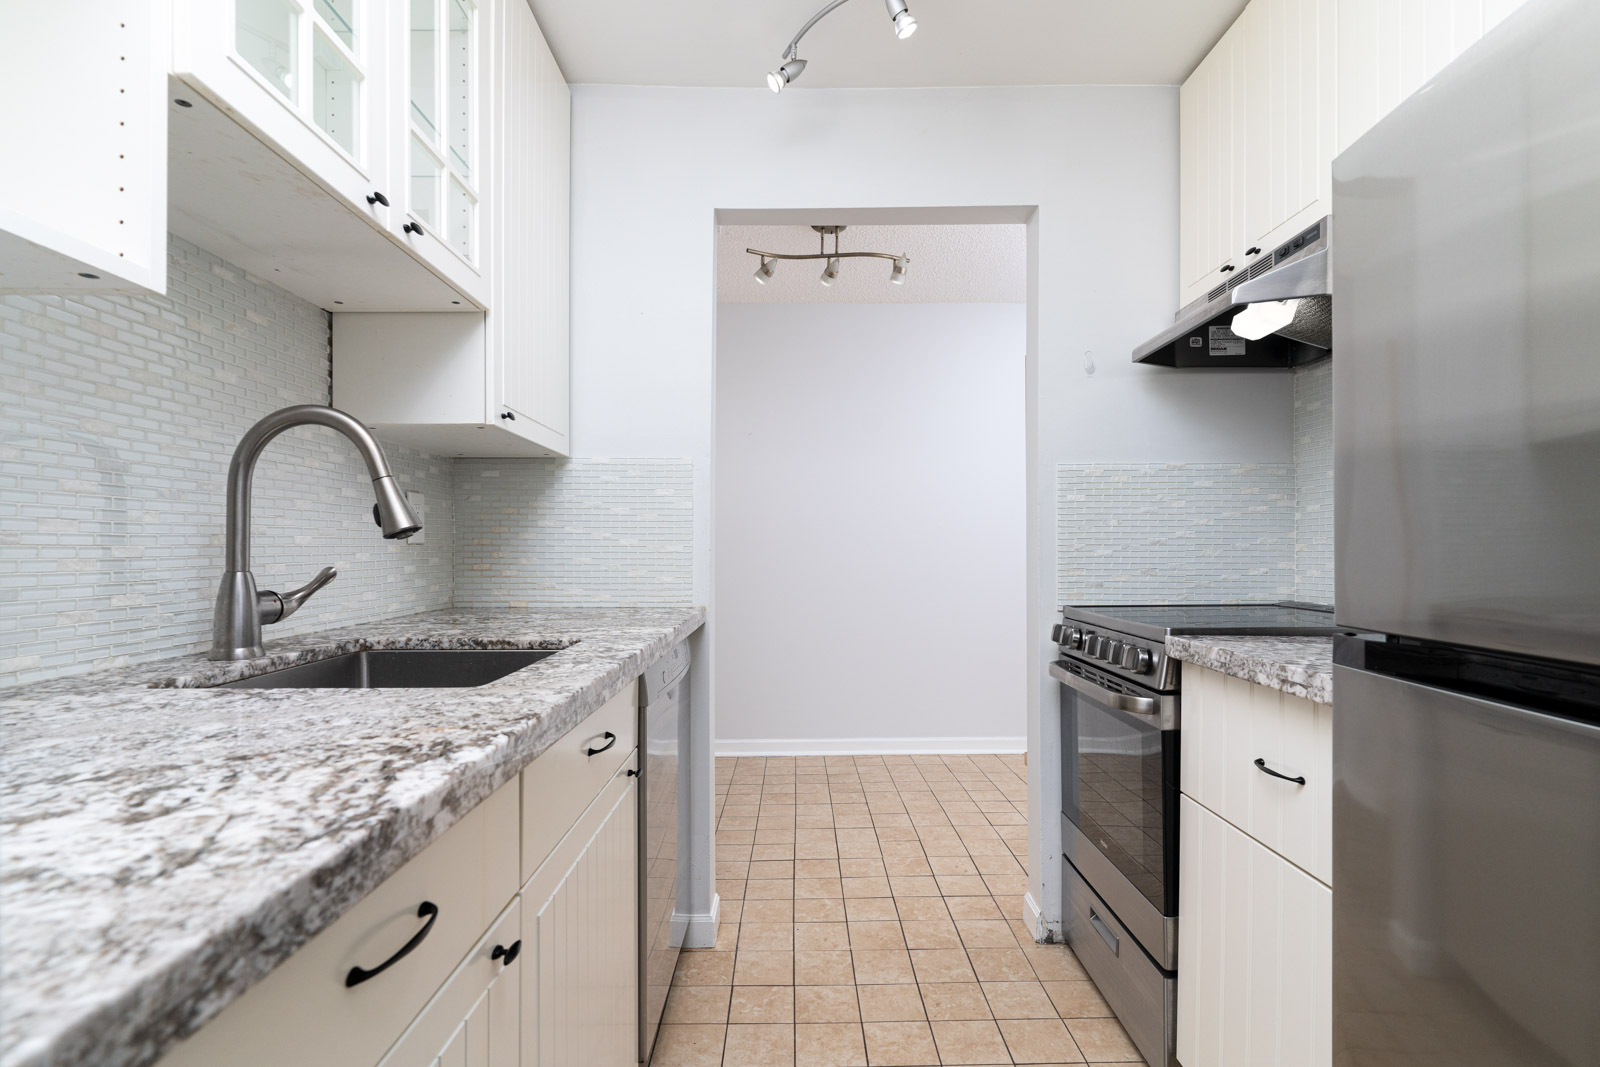 kitchen in condo in the mount pleasant neighborhood of vancouver; granite countertop kitchen with stainless steel appliances